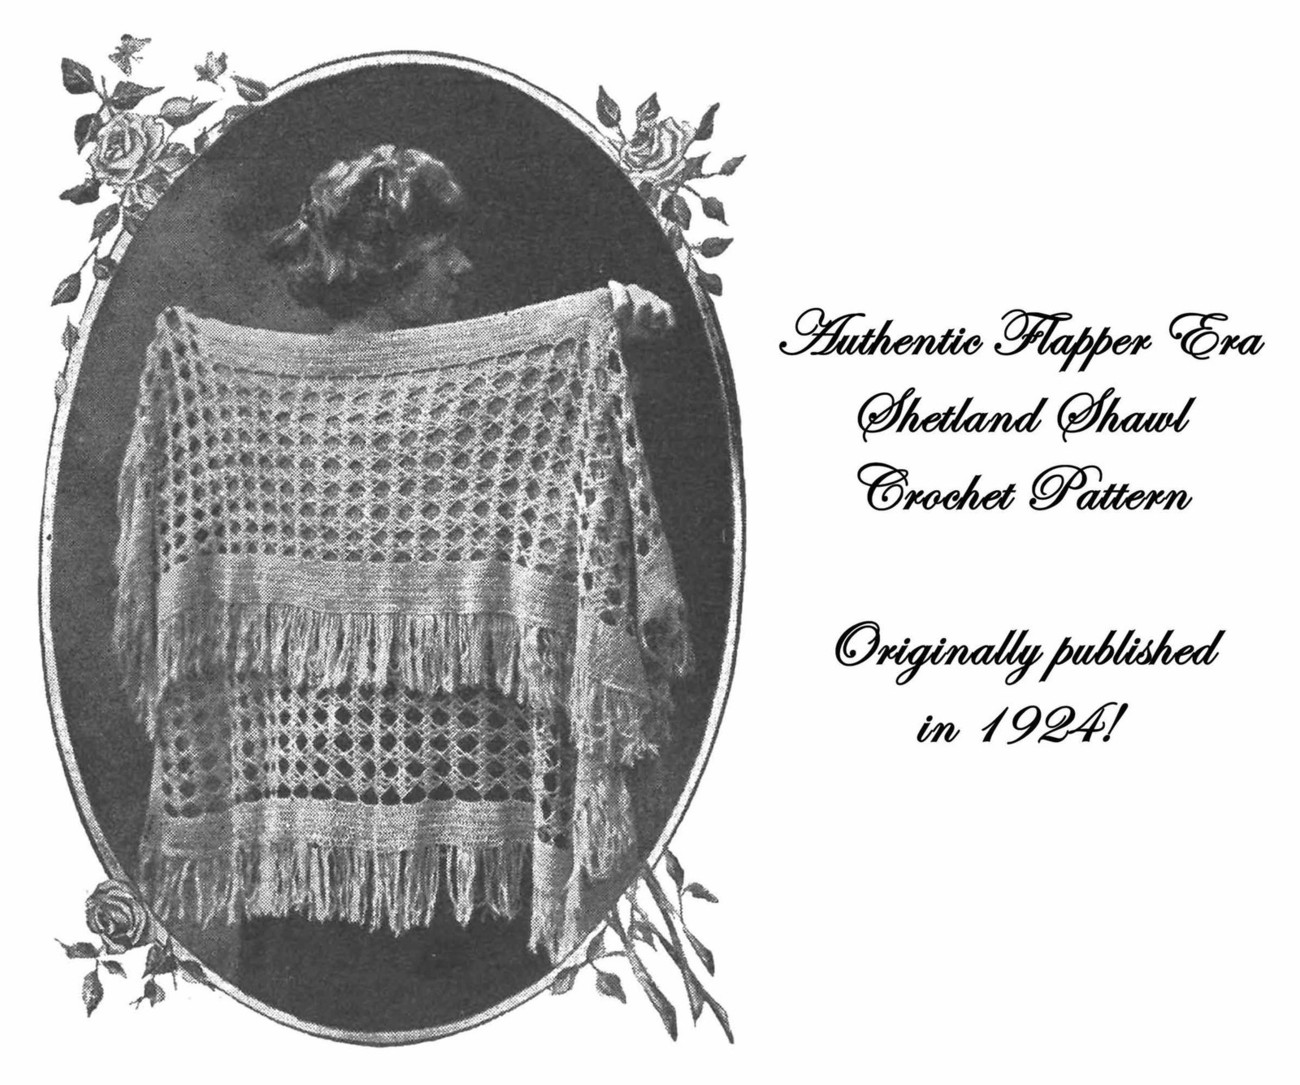 1924 Roaring 20s Flapper Crochet Square Shawl Crocheted Pattern DIY Prohibition